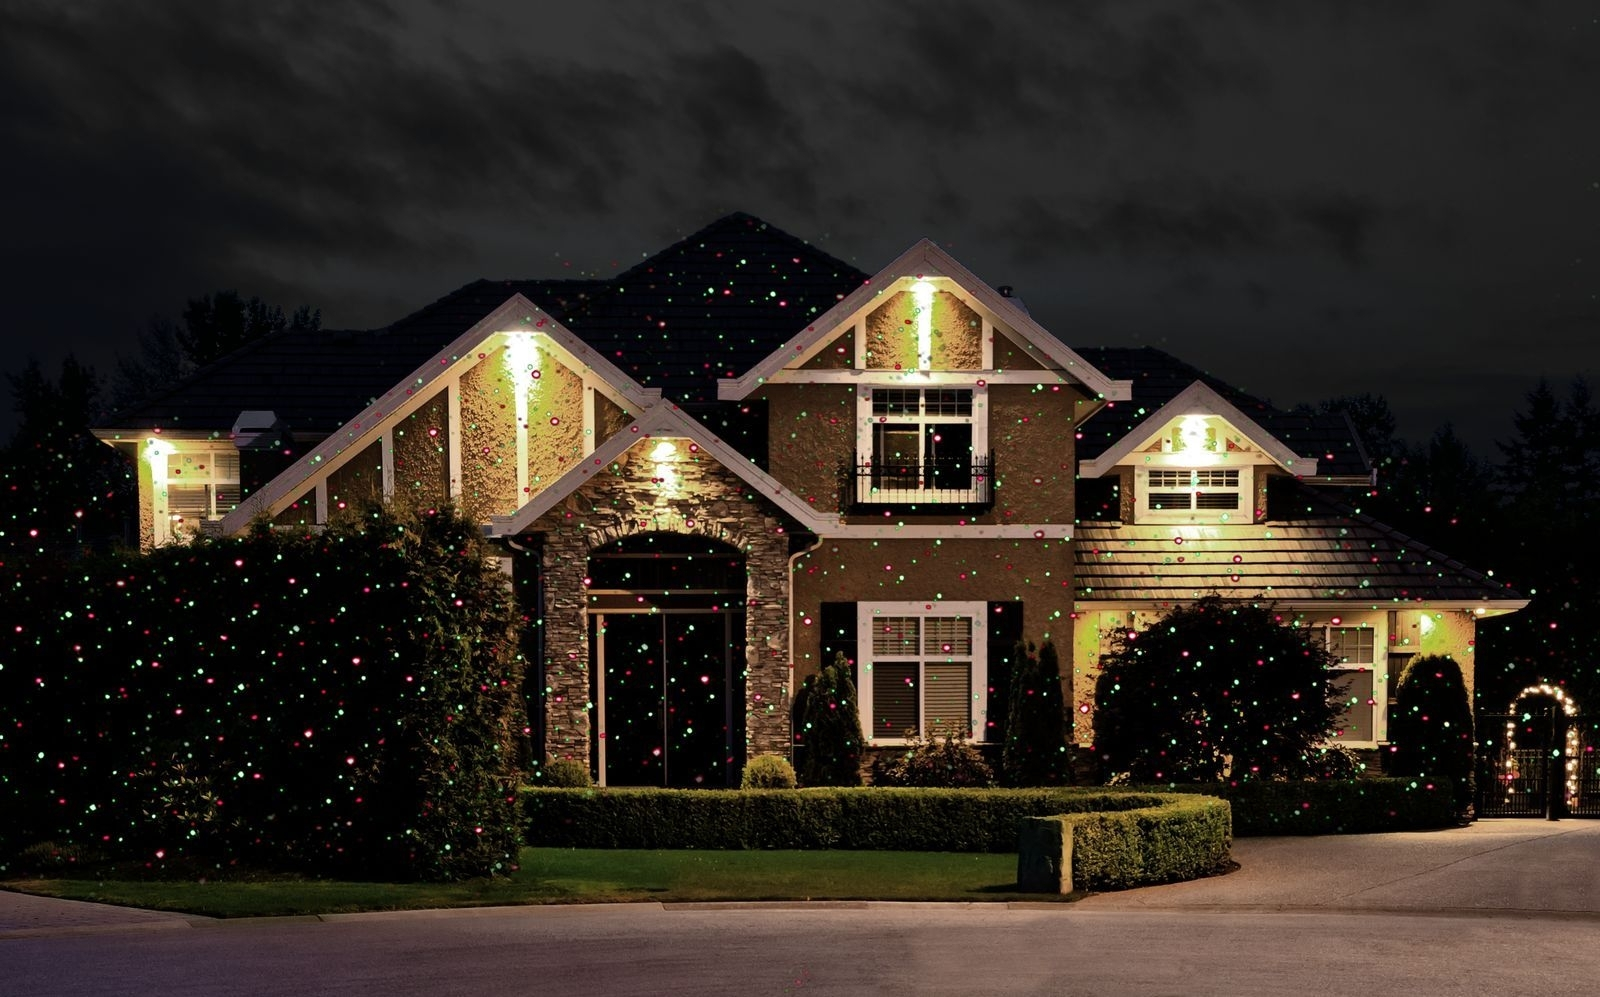 Image of: Startastic Holiday Light Show The As Seen On Tv Laser Light Throughout Landscape Laser Lights Landscape Laser Lights Ideas